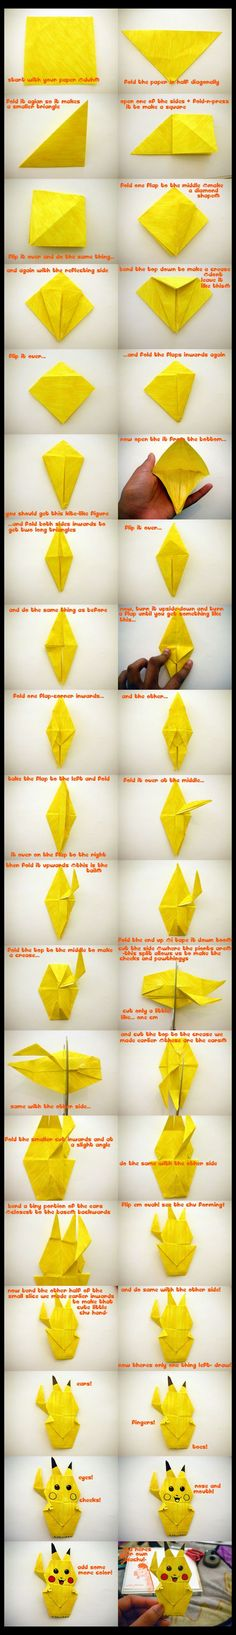 How To Make An Origami Pikachu. These instructions are terrible but I got it done! So cute :):